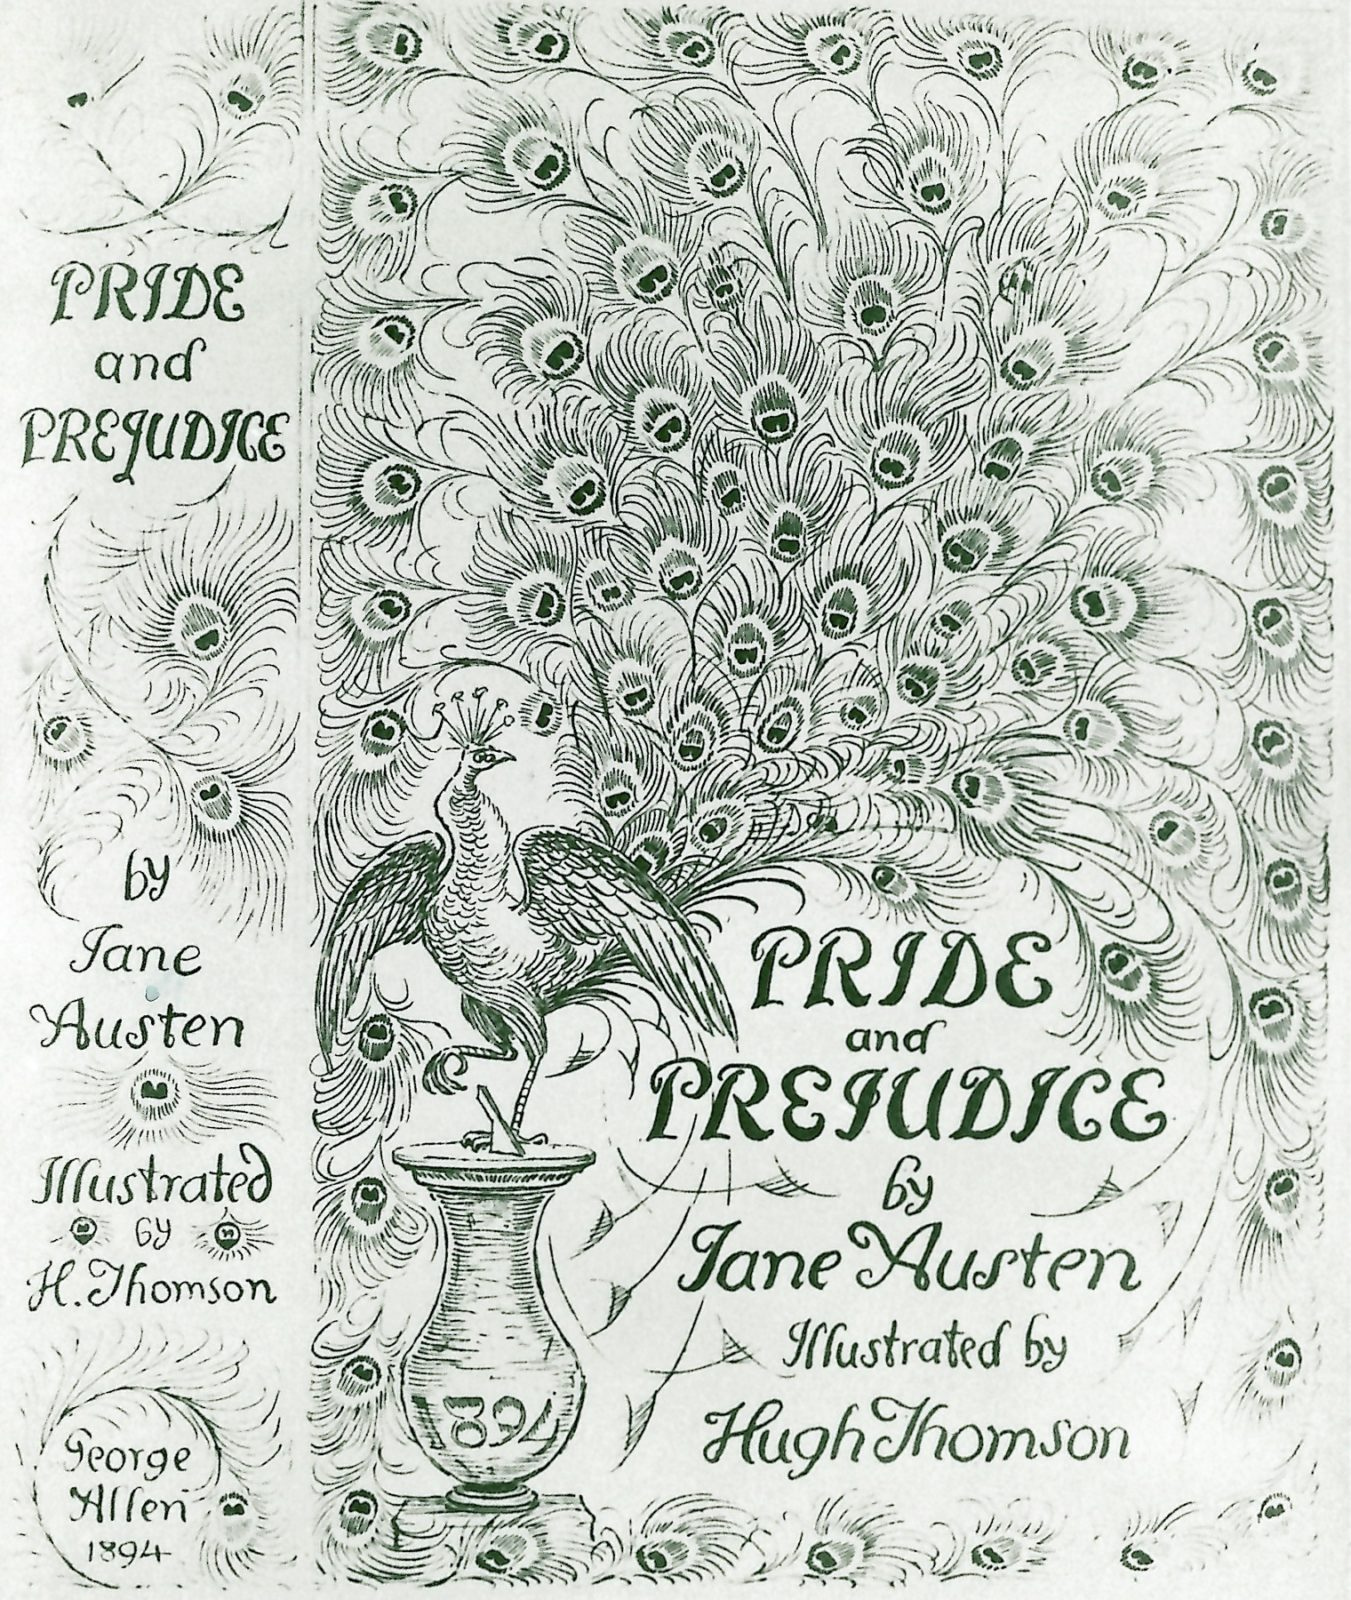 Front cover of The Peacock Edition, illustrated by Hugh Thomson